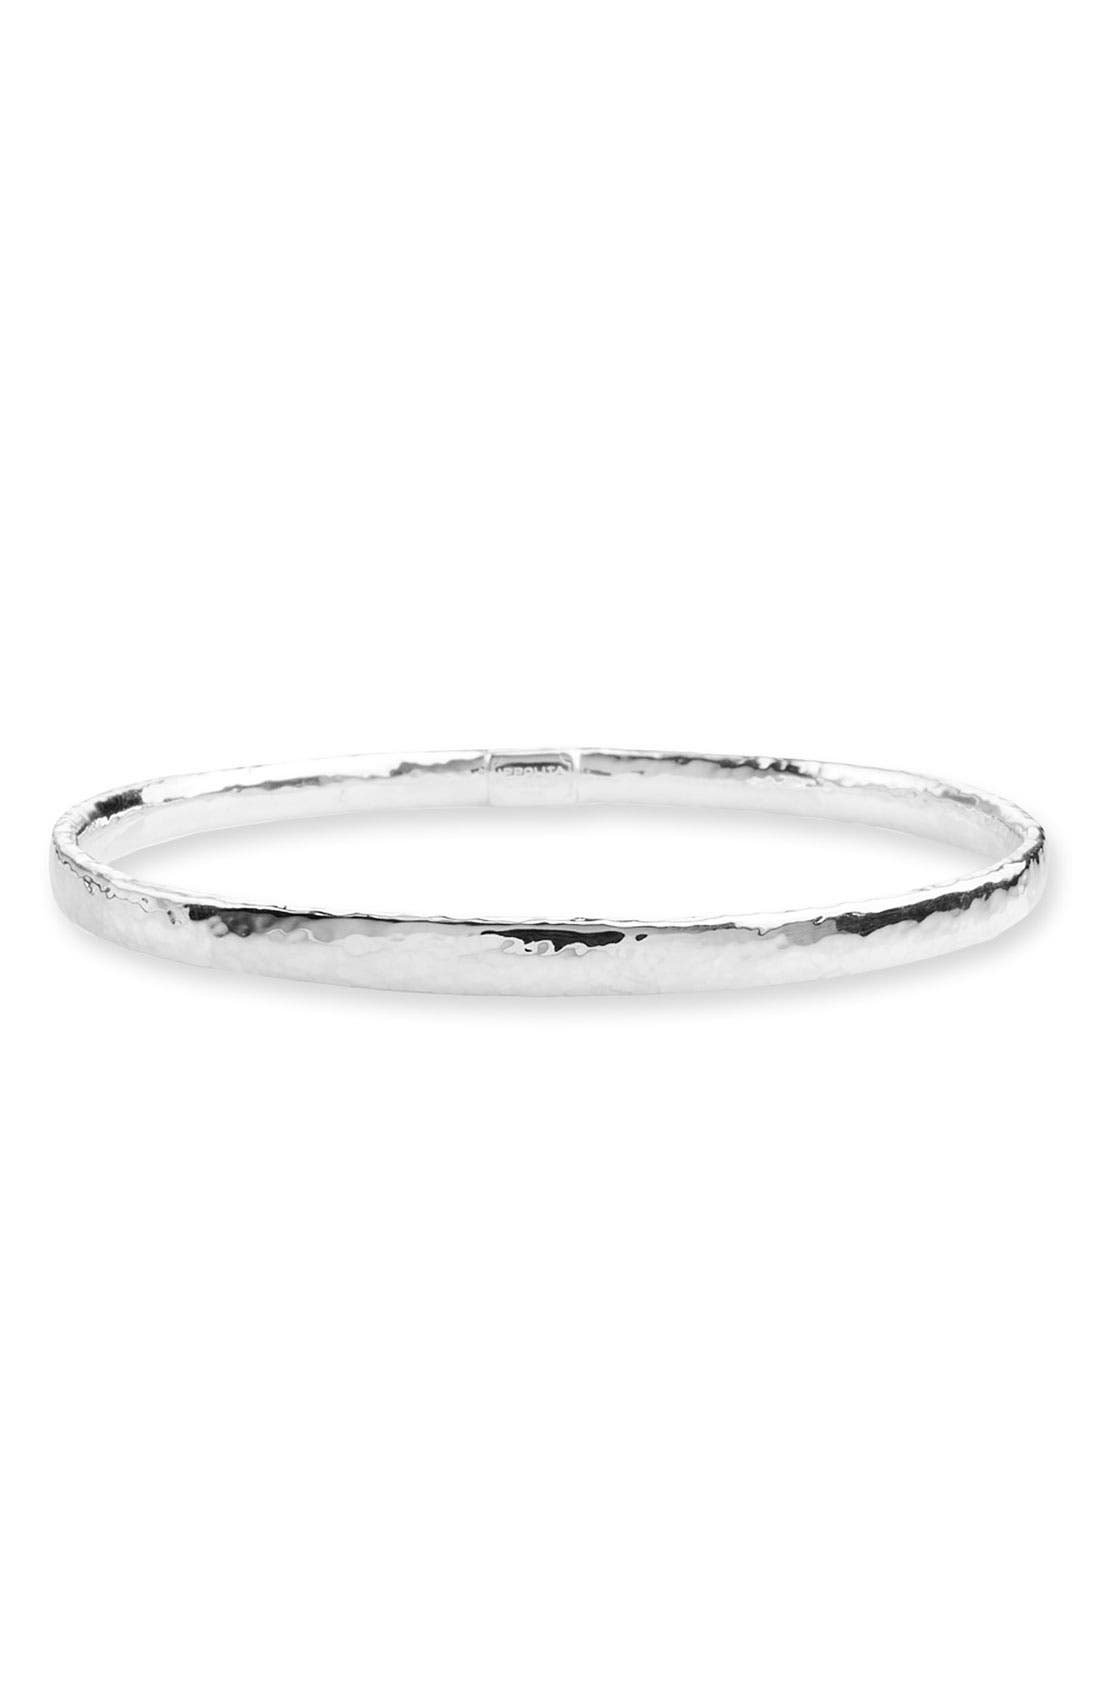 Alternate Image 1 Selected - Ippolita 'Glamazon' Sterling Silver Bangle